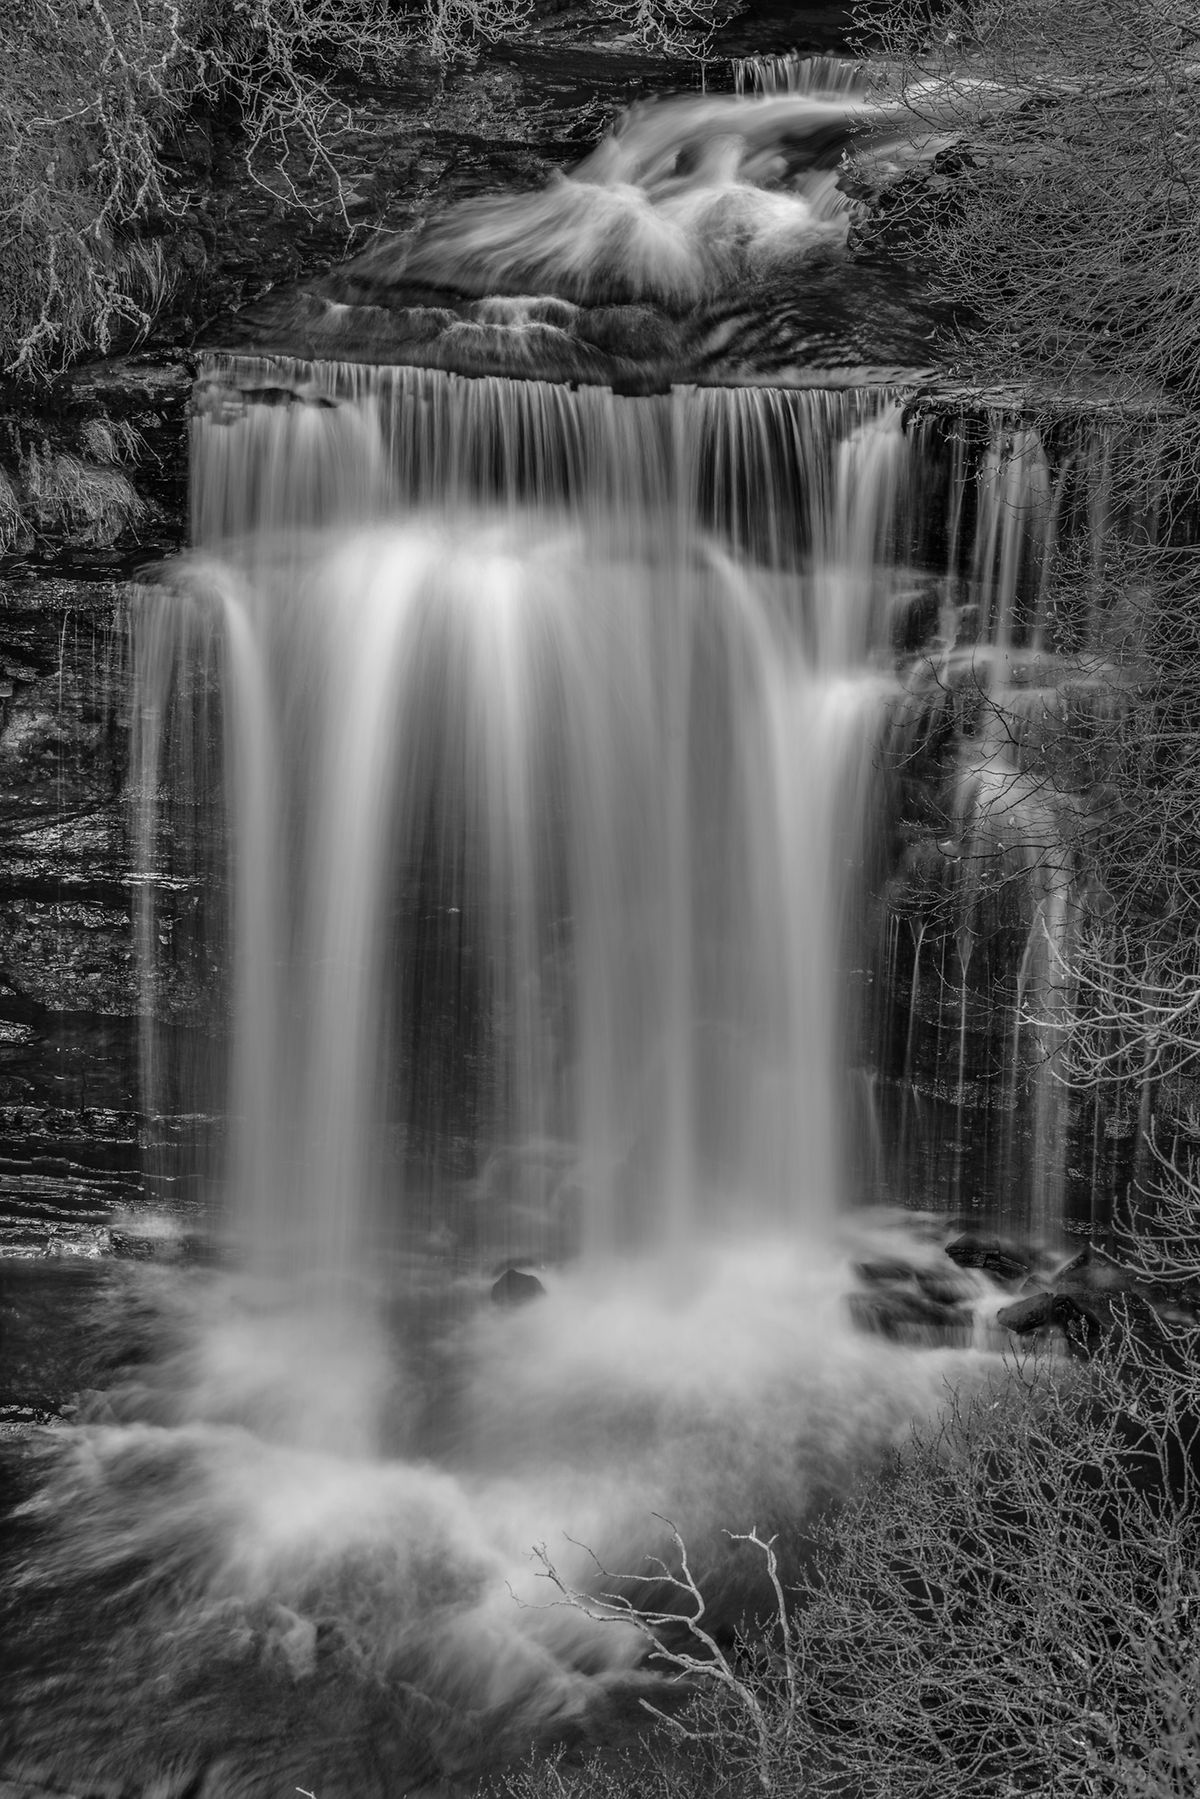 Wasserfall / water fall (Isle of Skye / Schottland - Scotland) b&w182